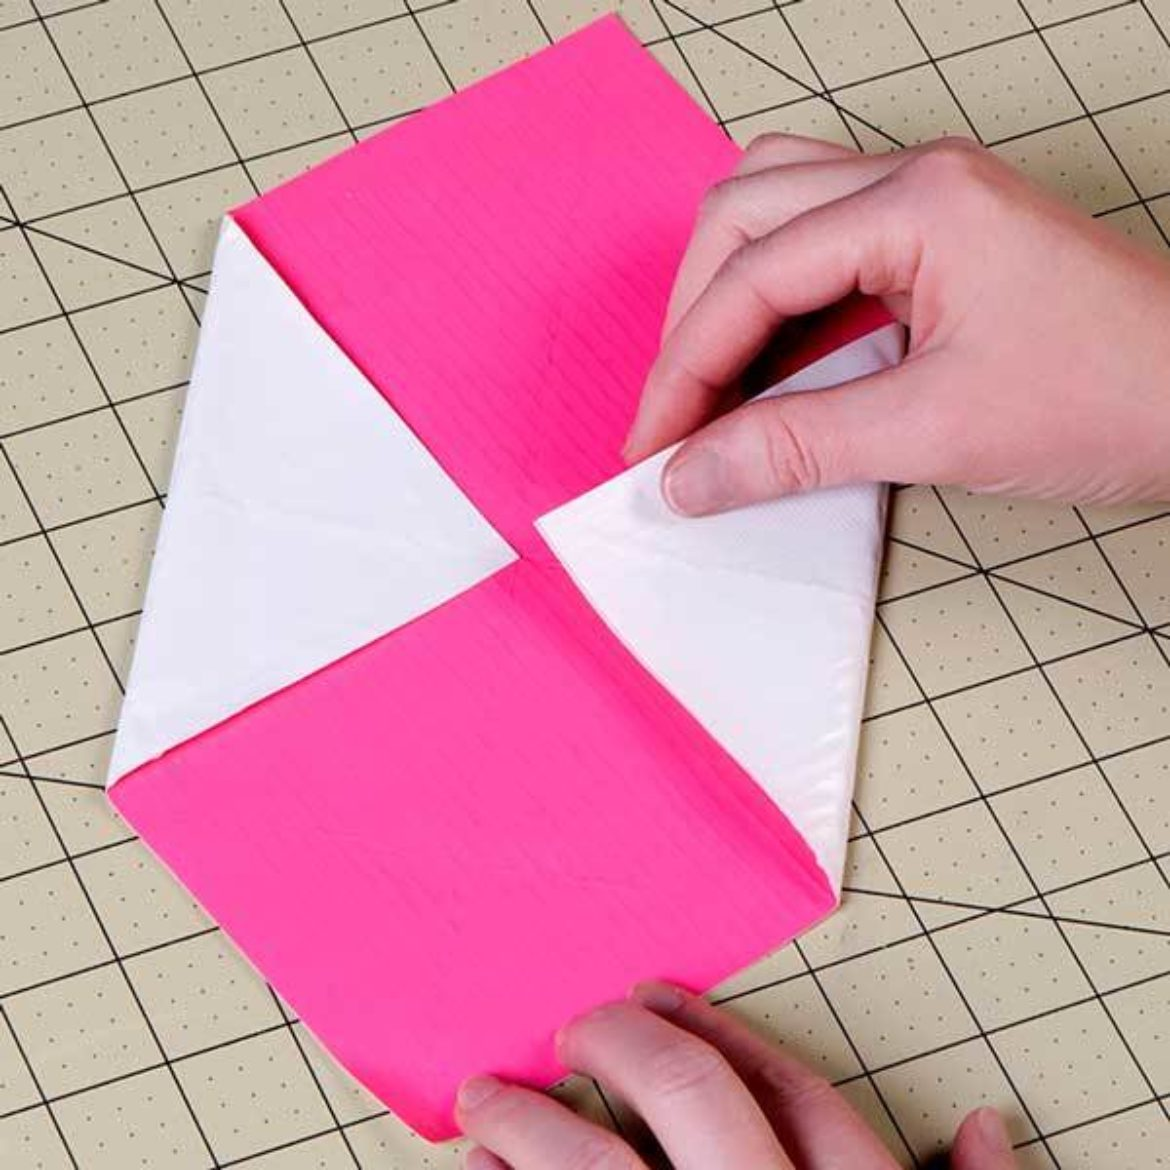 Four corners of the square folded to the center to form a smaller square shape